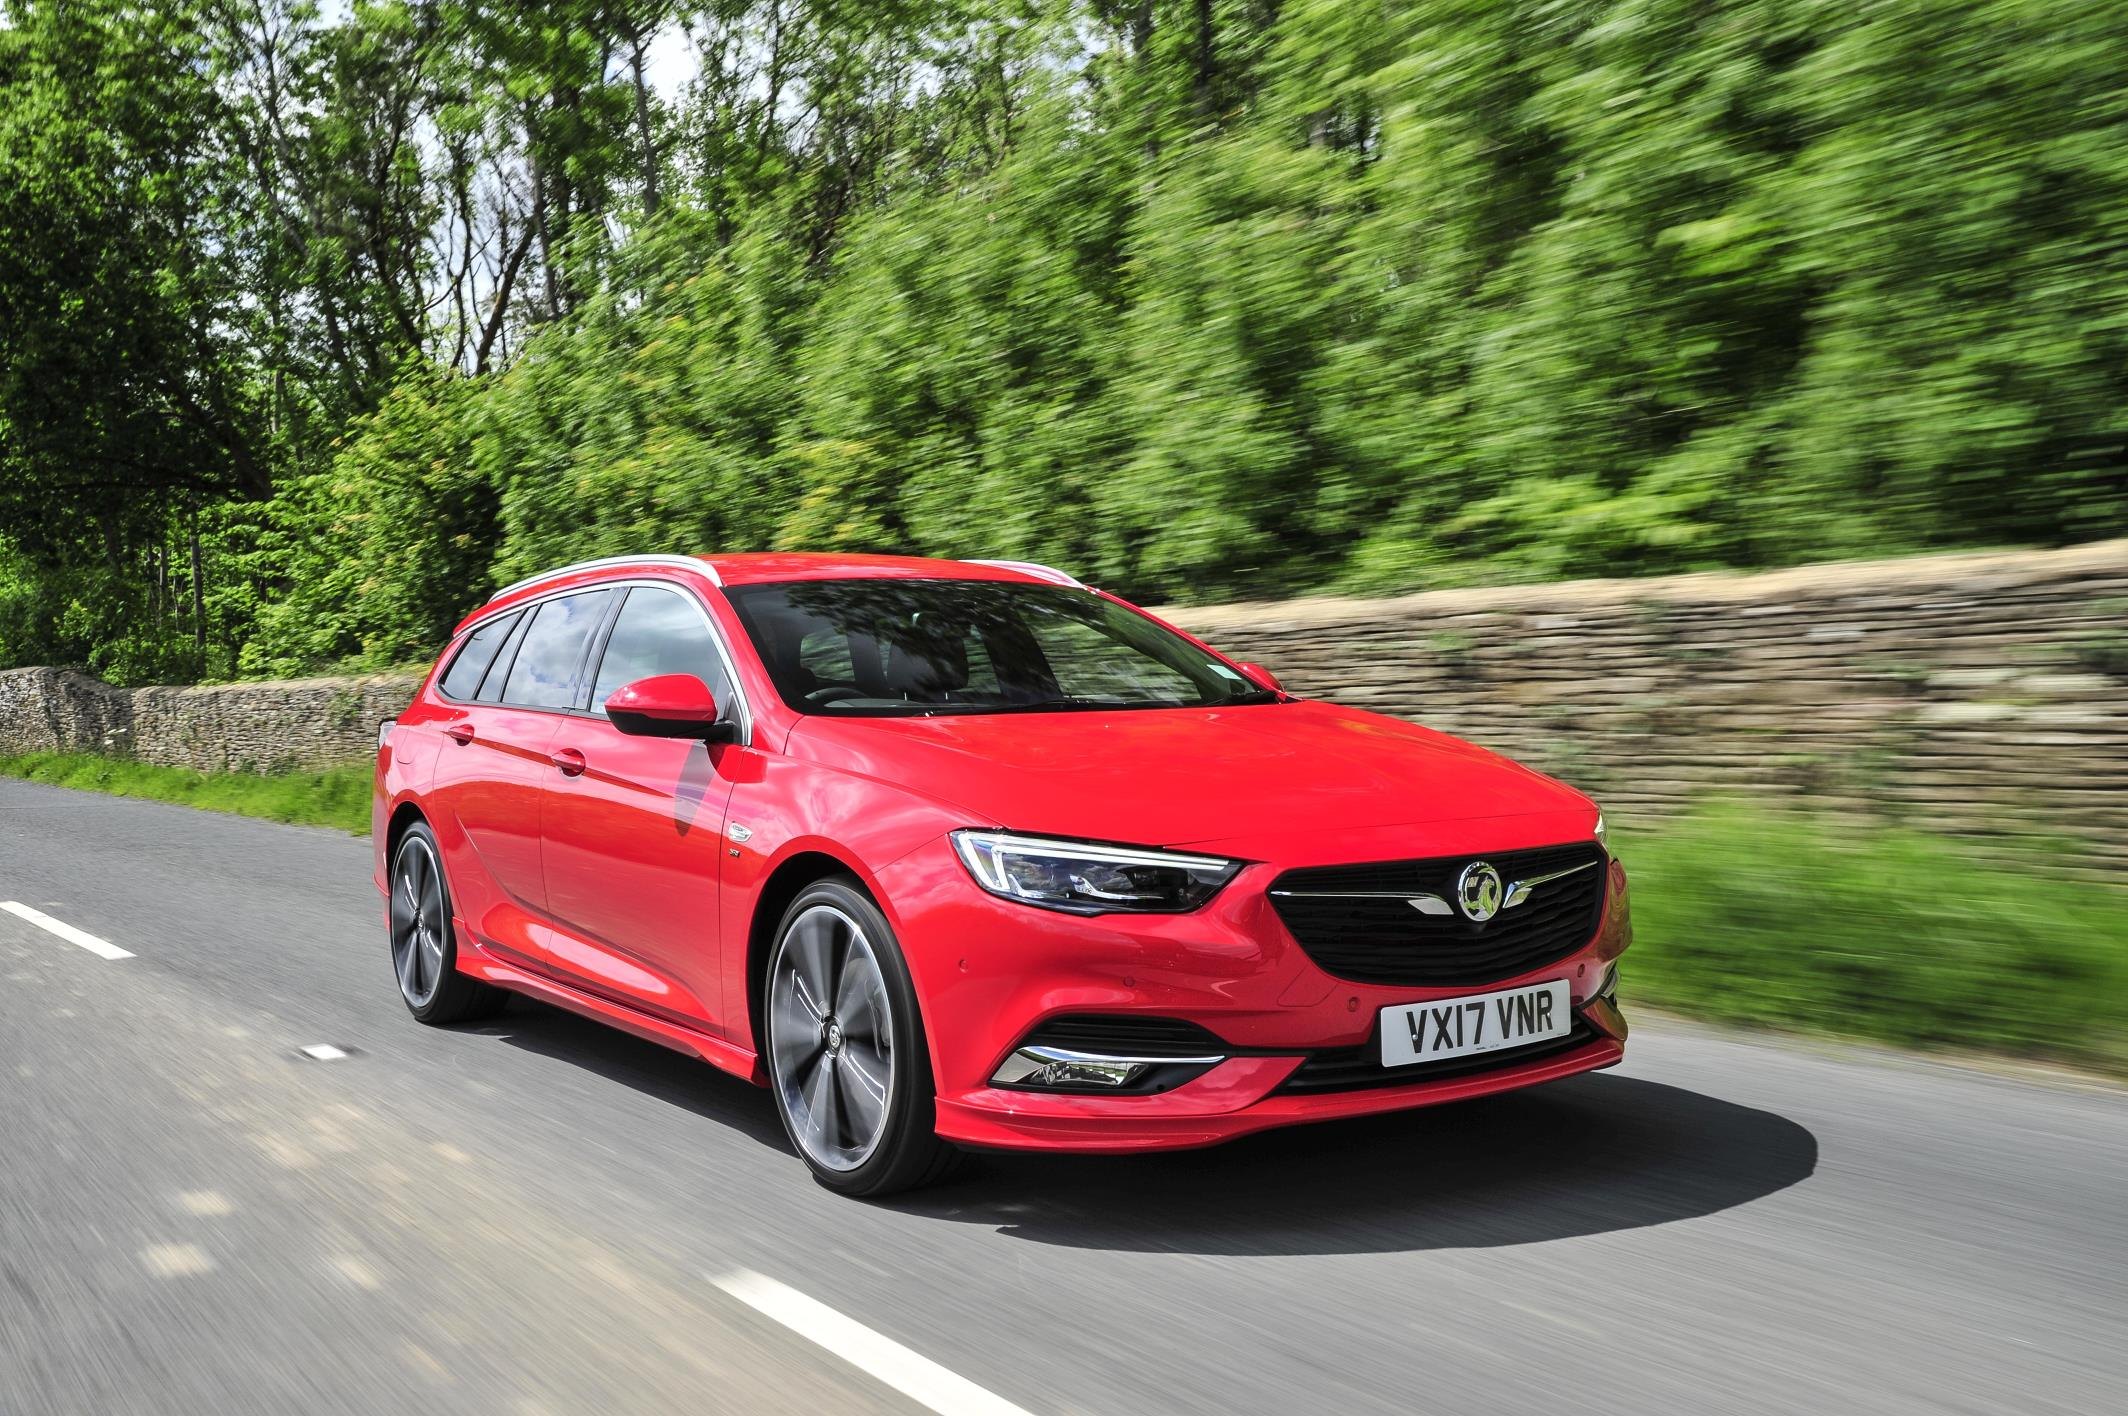 Vauxhall Insignia Sports on road in red